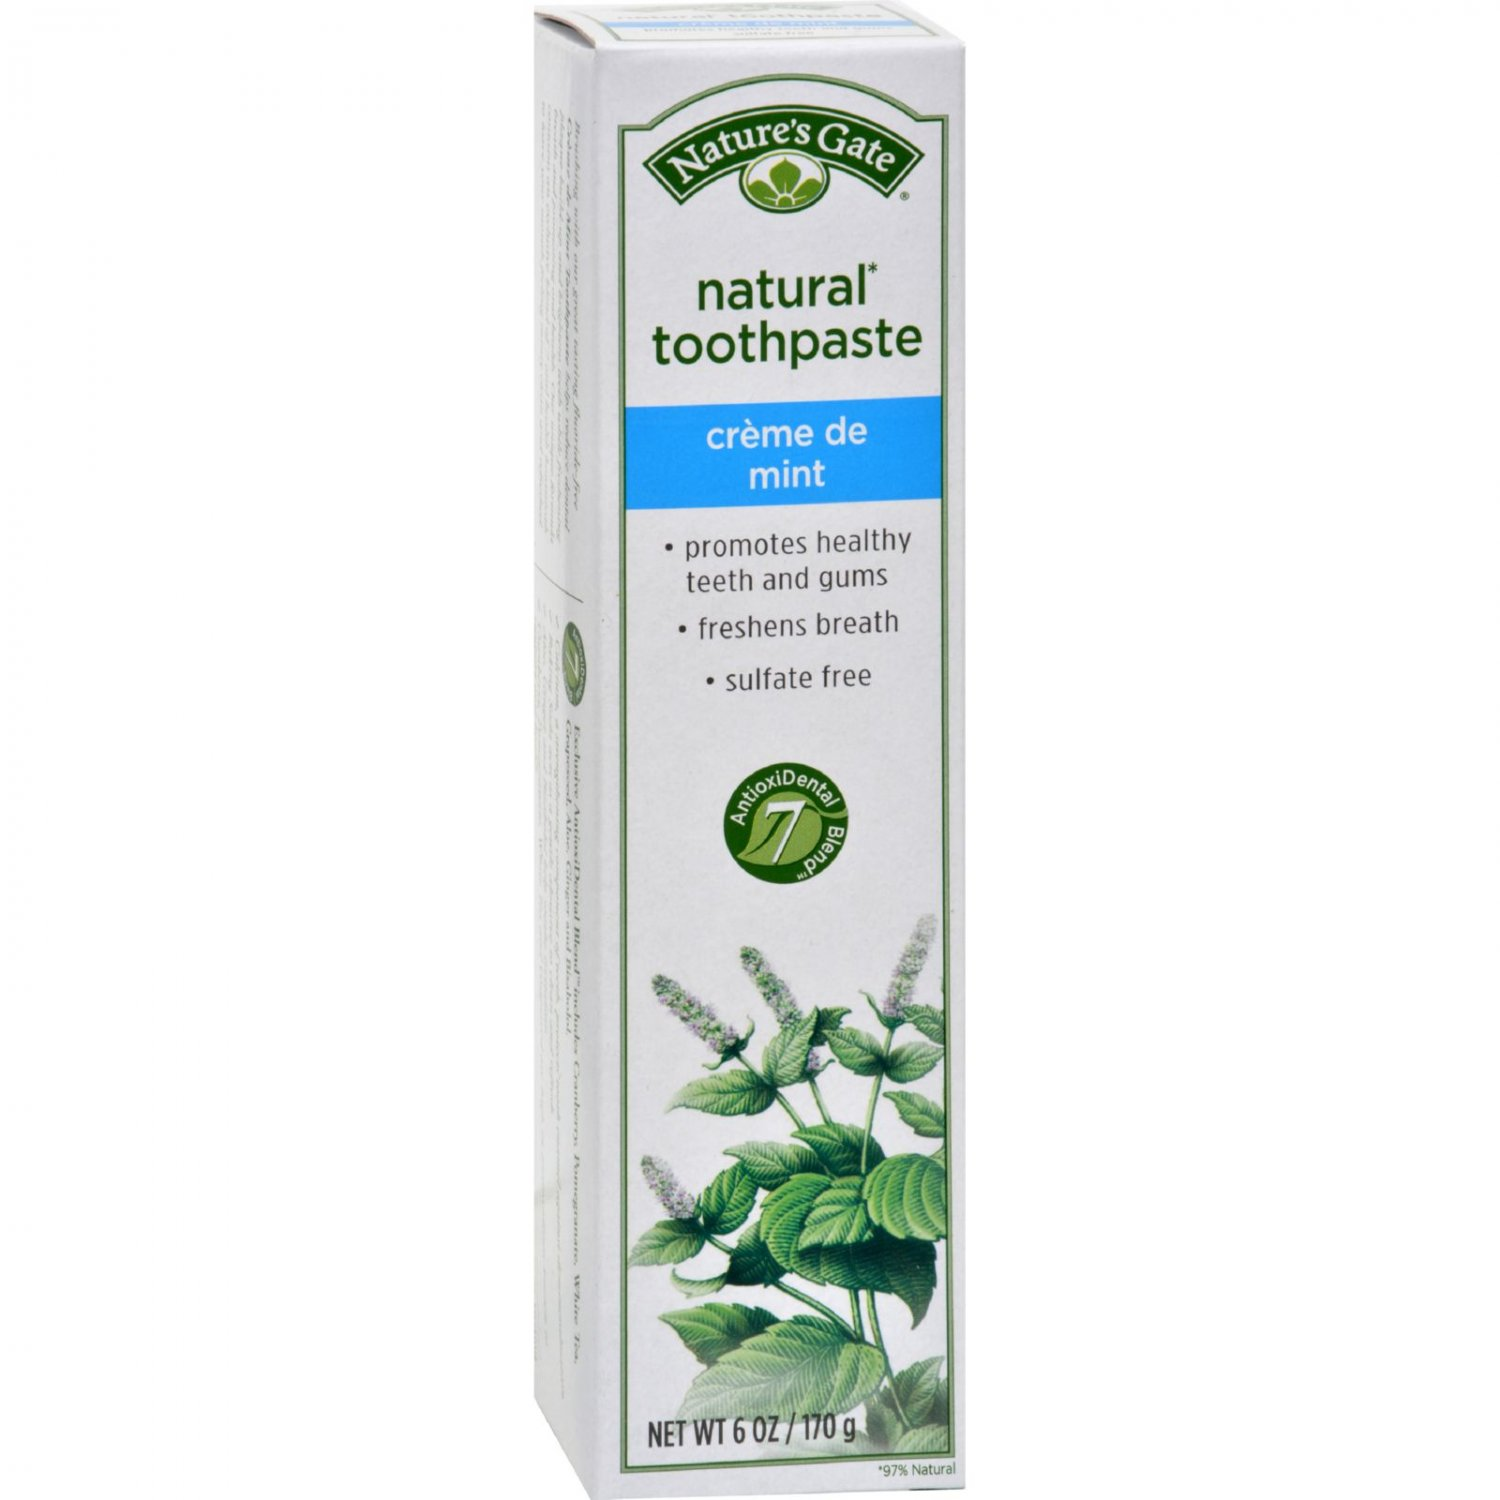 Nature's Gate Natural Toothpaste Creme De Mint Flouride Free - 6 oz - Case of 6